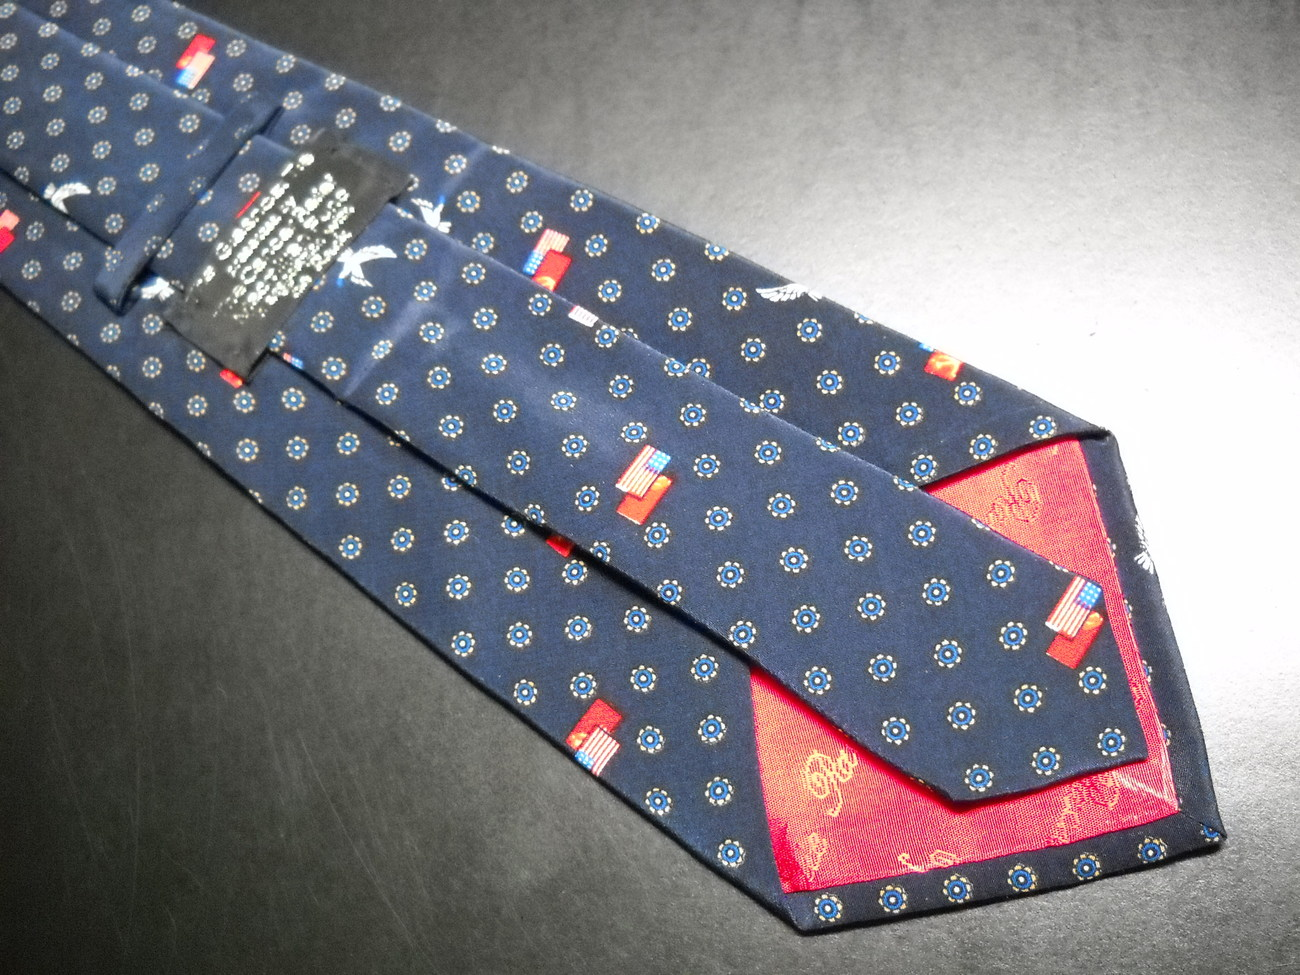 Glasnost Neck Tie Cancer Relief Macmillian Fund Blue Doves By Tie Rack